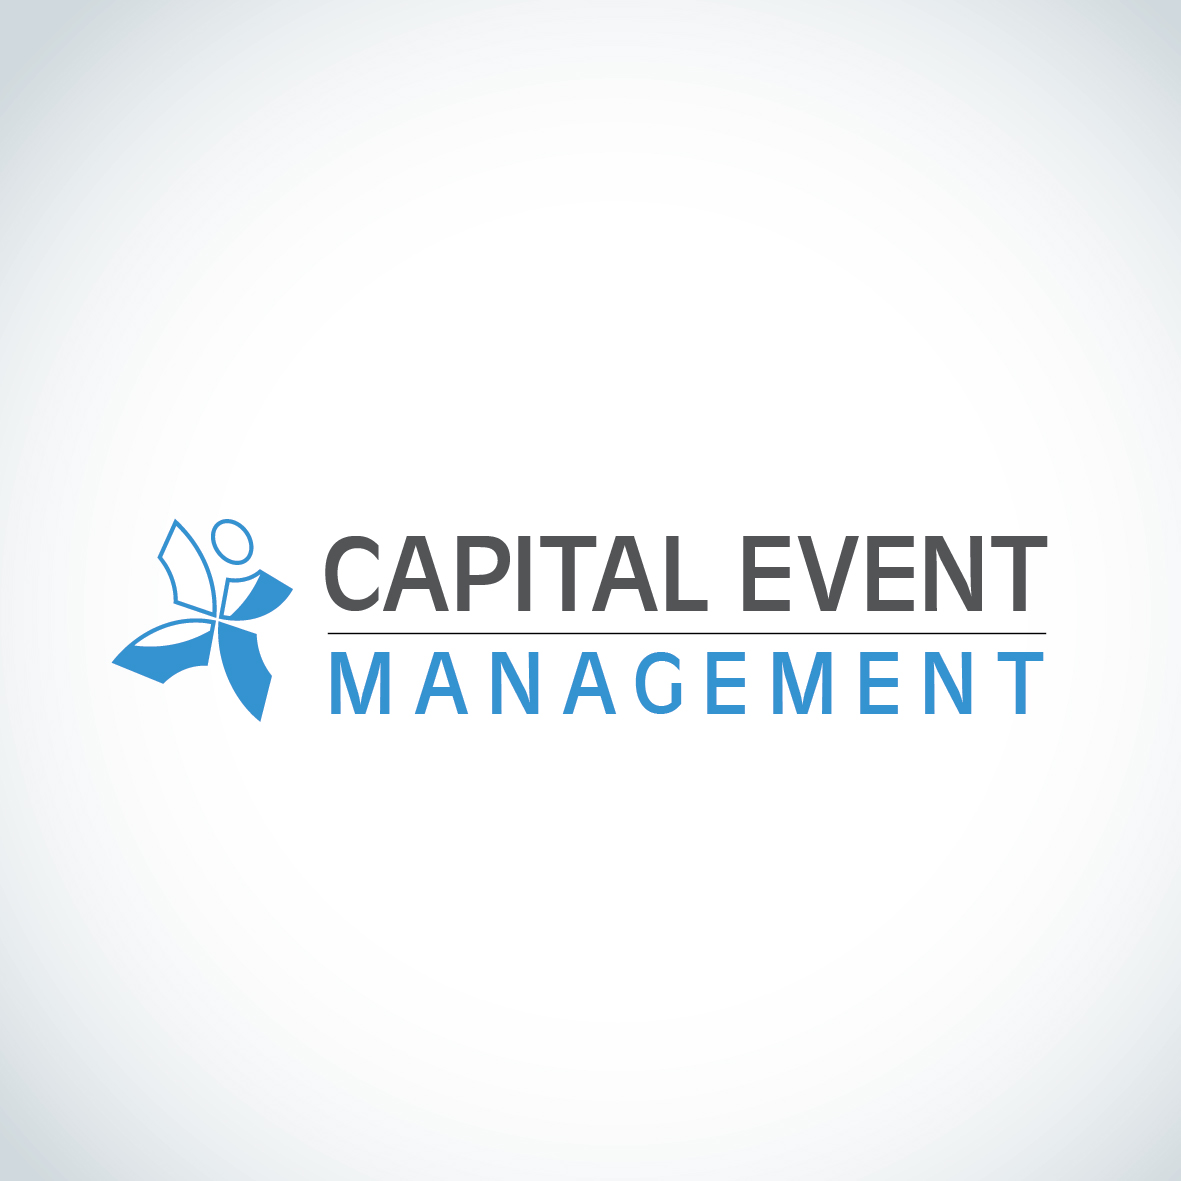 Logo Design by aesthetic-art - Entry No. 19 in the Logo Design Contest Capital Event Management.